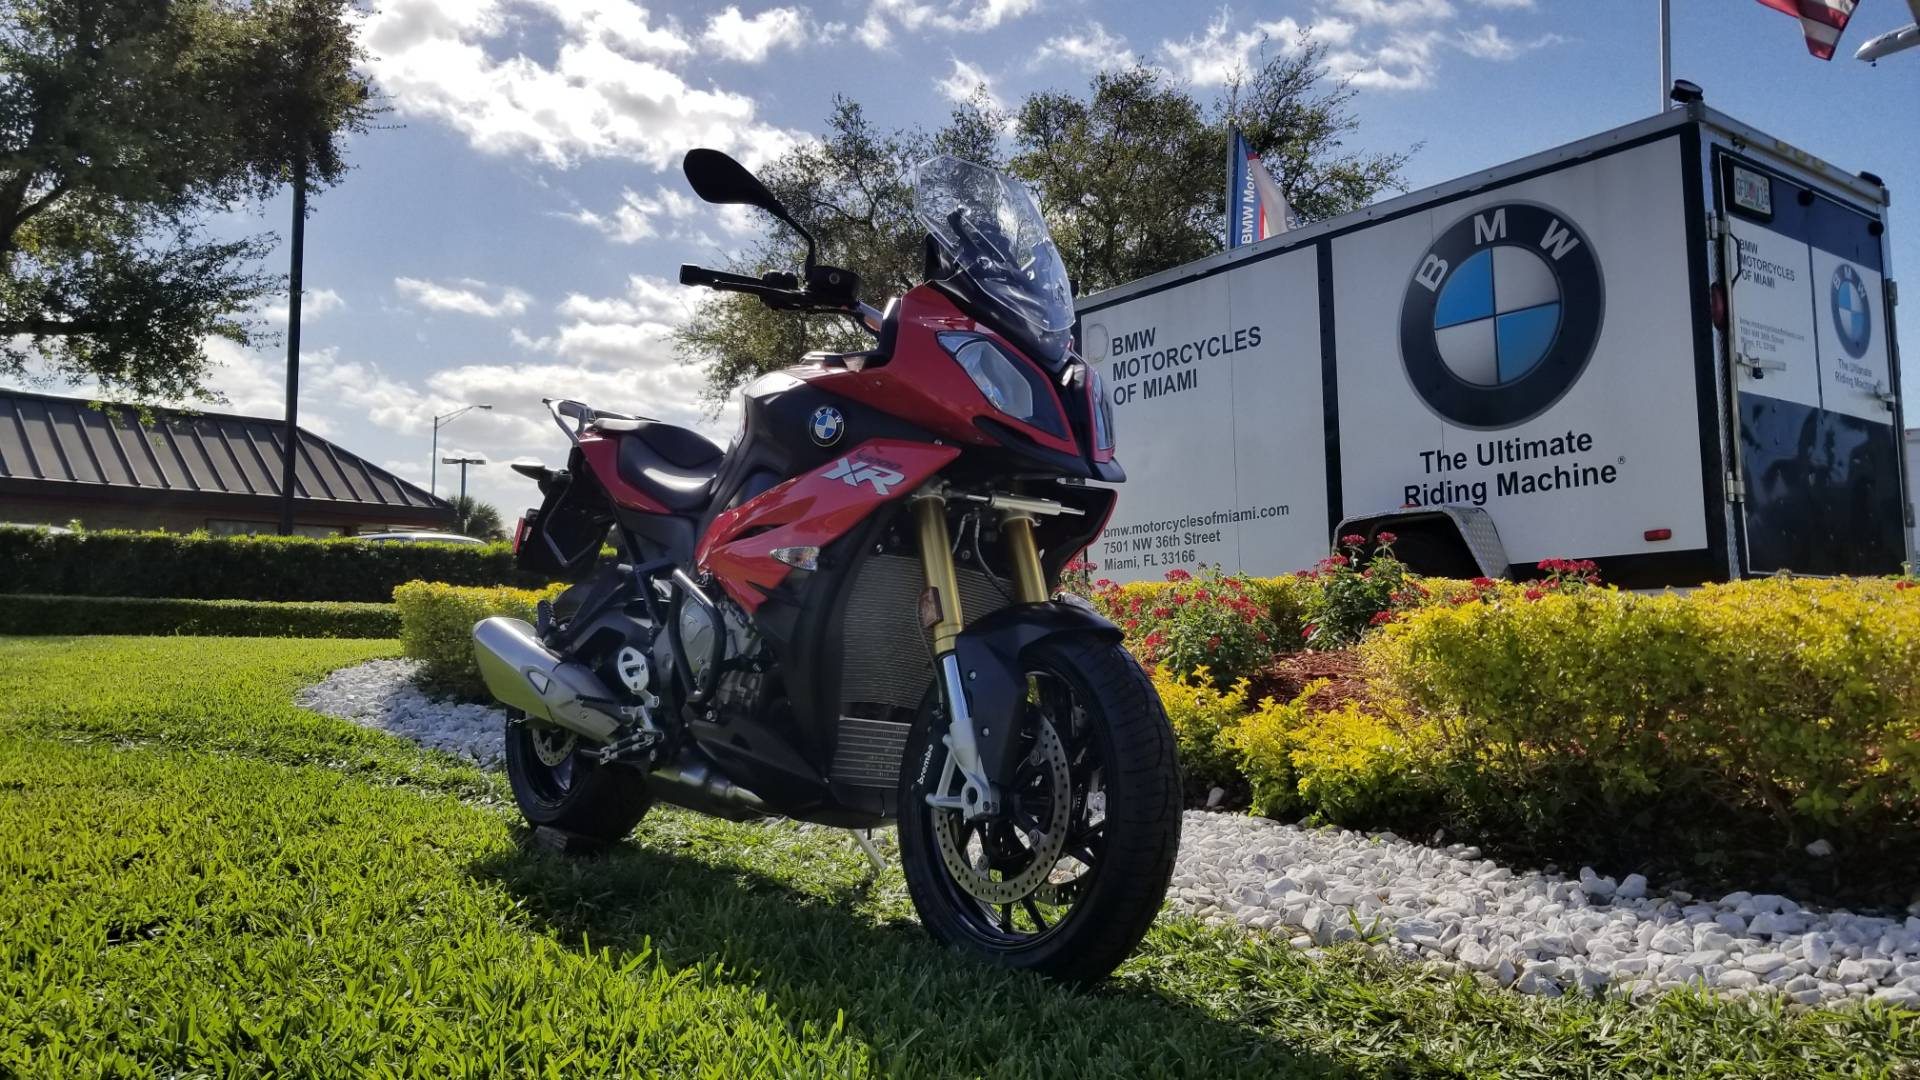 Used 2016 BMW S 1000 XR For Sale, Pre Owned BMW S 1000XR For Sale, Pre-Owned BMW Motorcycle S1000XR, BMW Motorcycle, S 1000 XR, DUAL, BMW - Photo 1